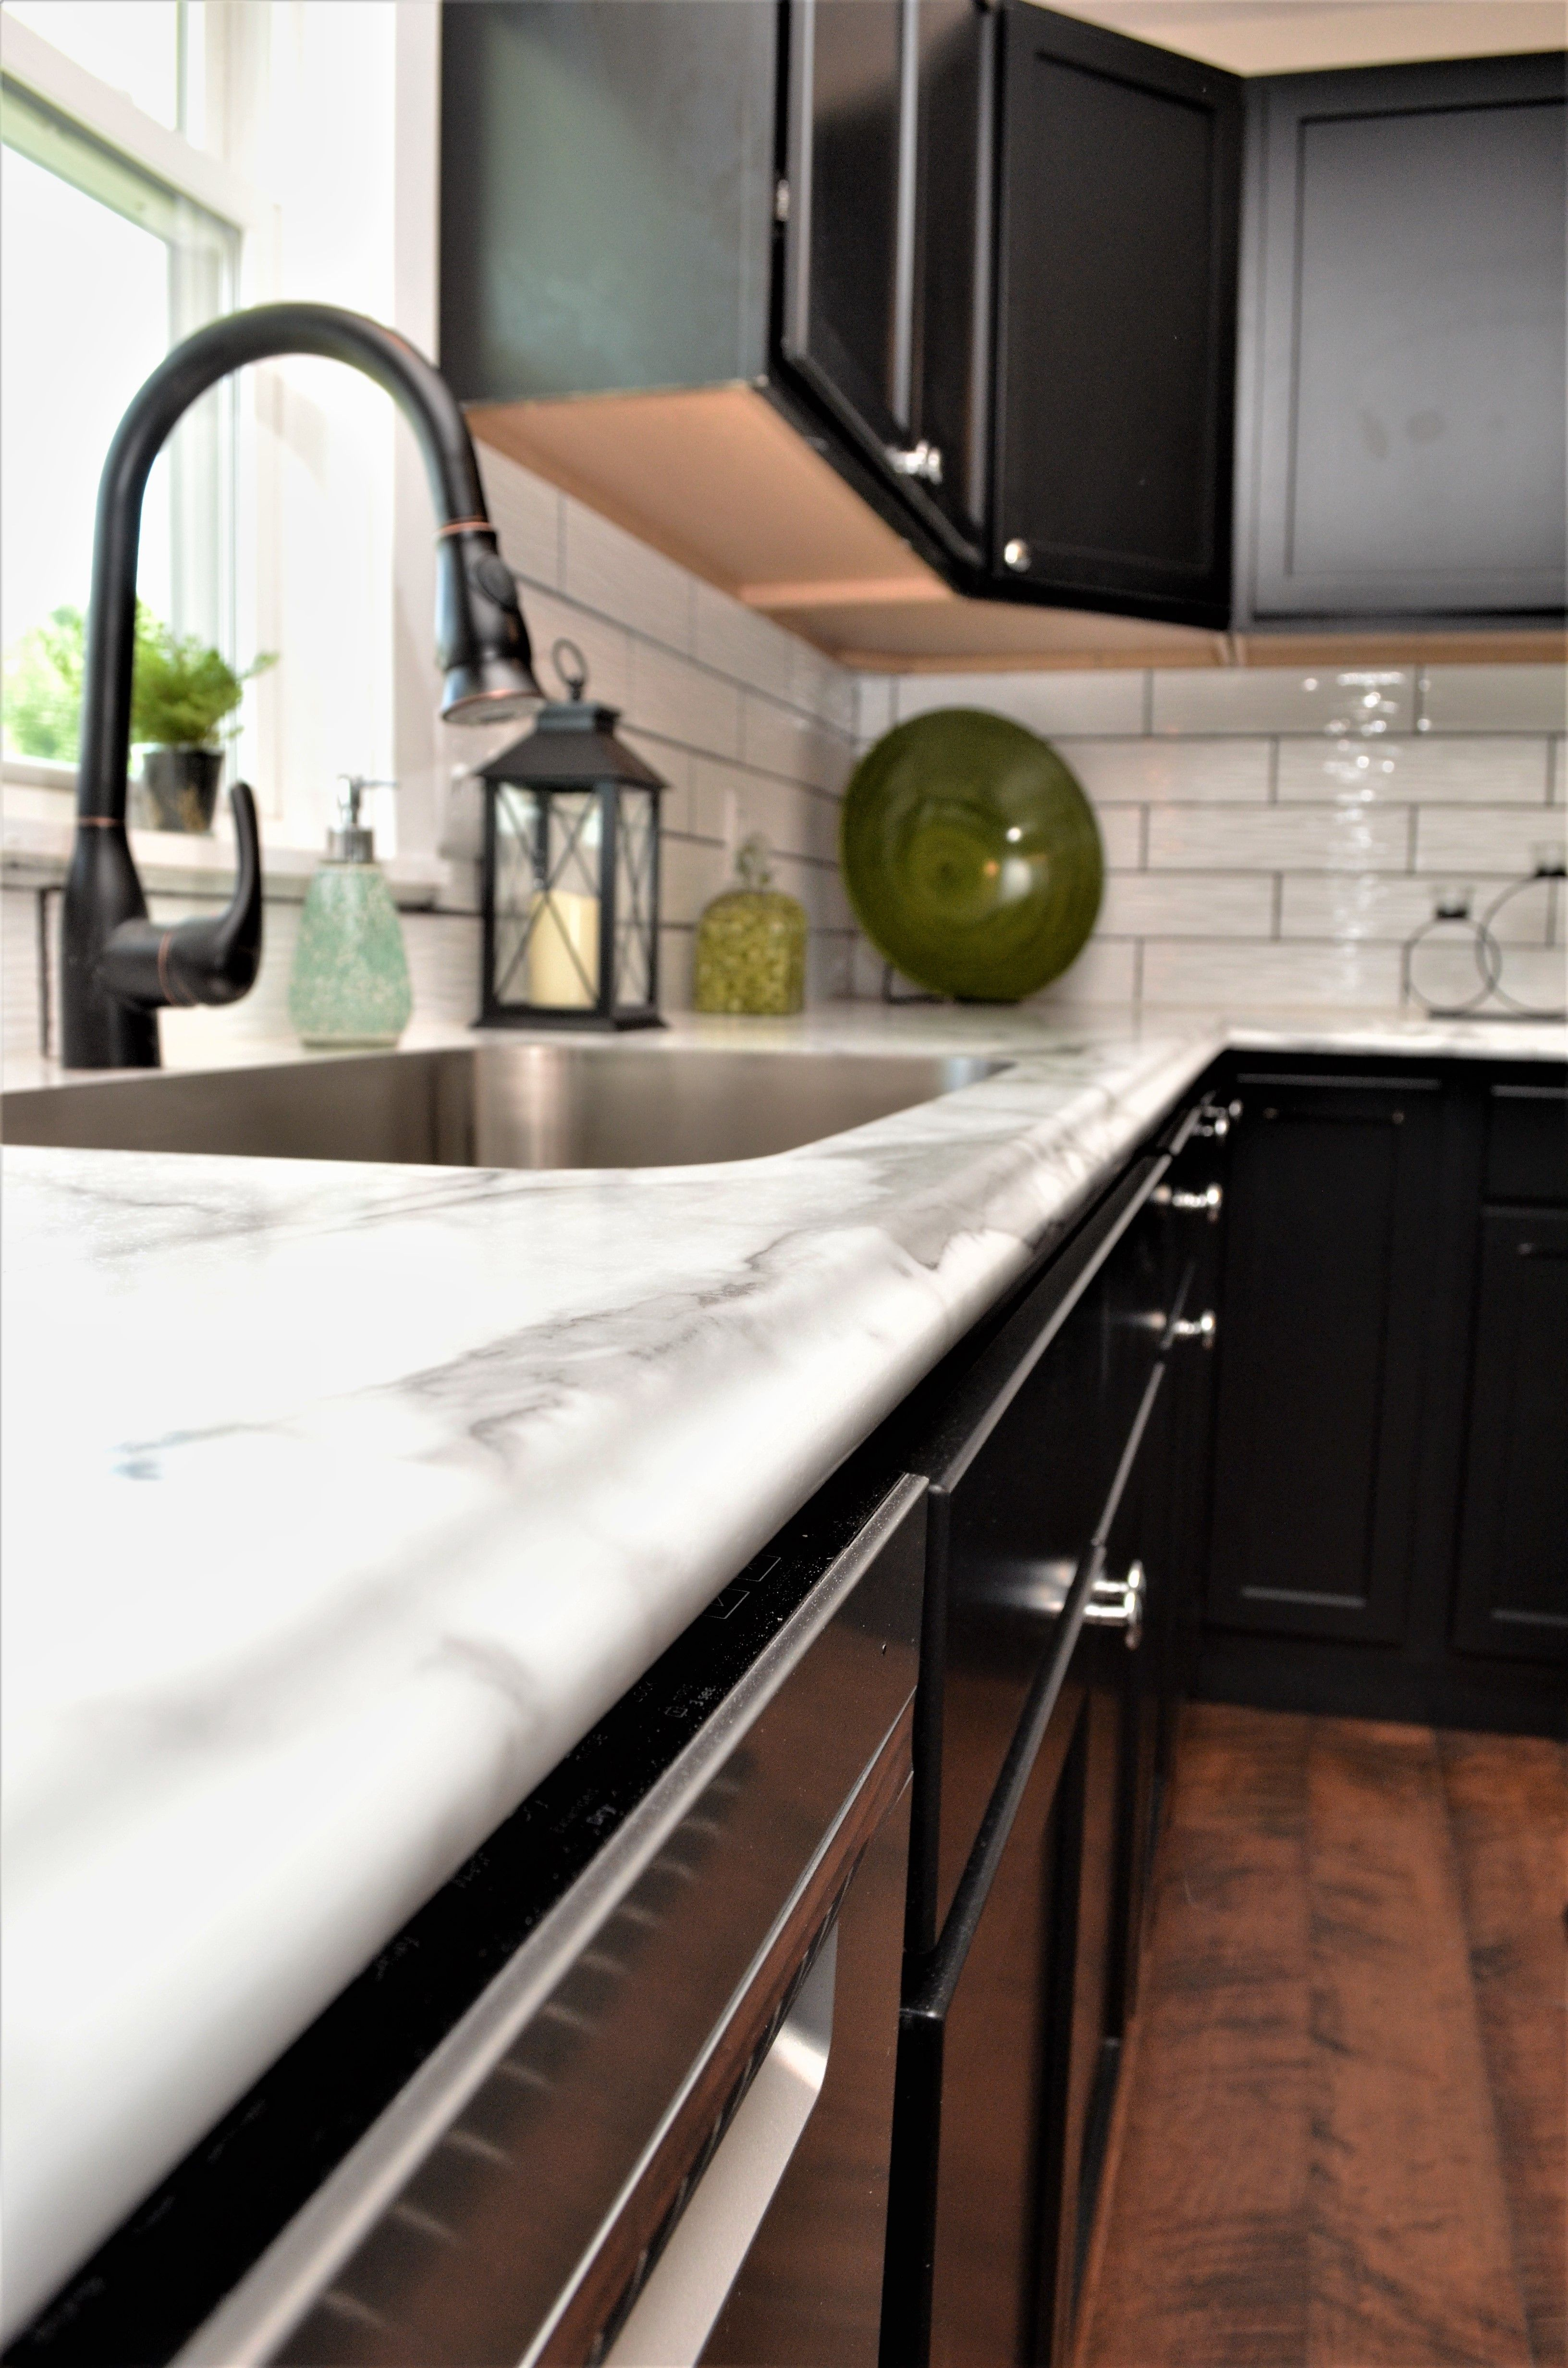 Laminate Countertop Amore Edge Style Calacatta Marble Color